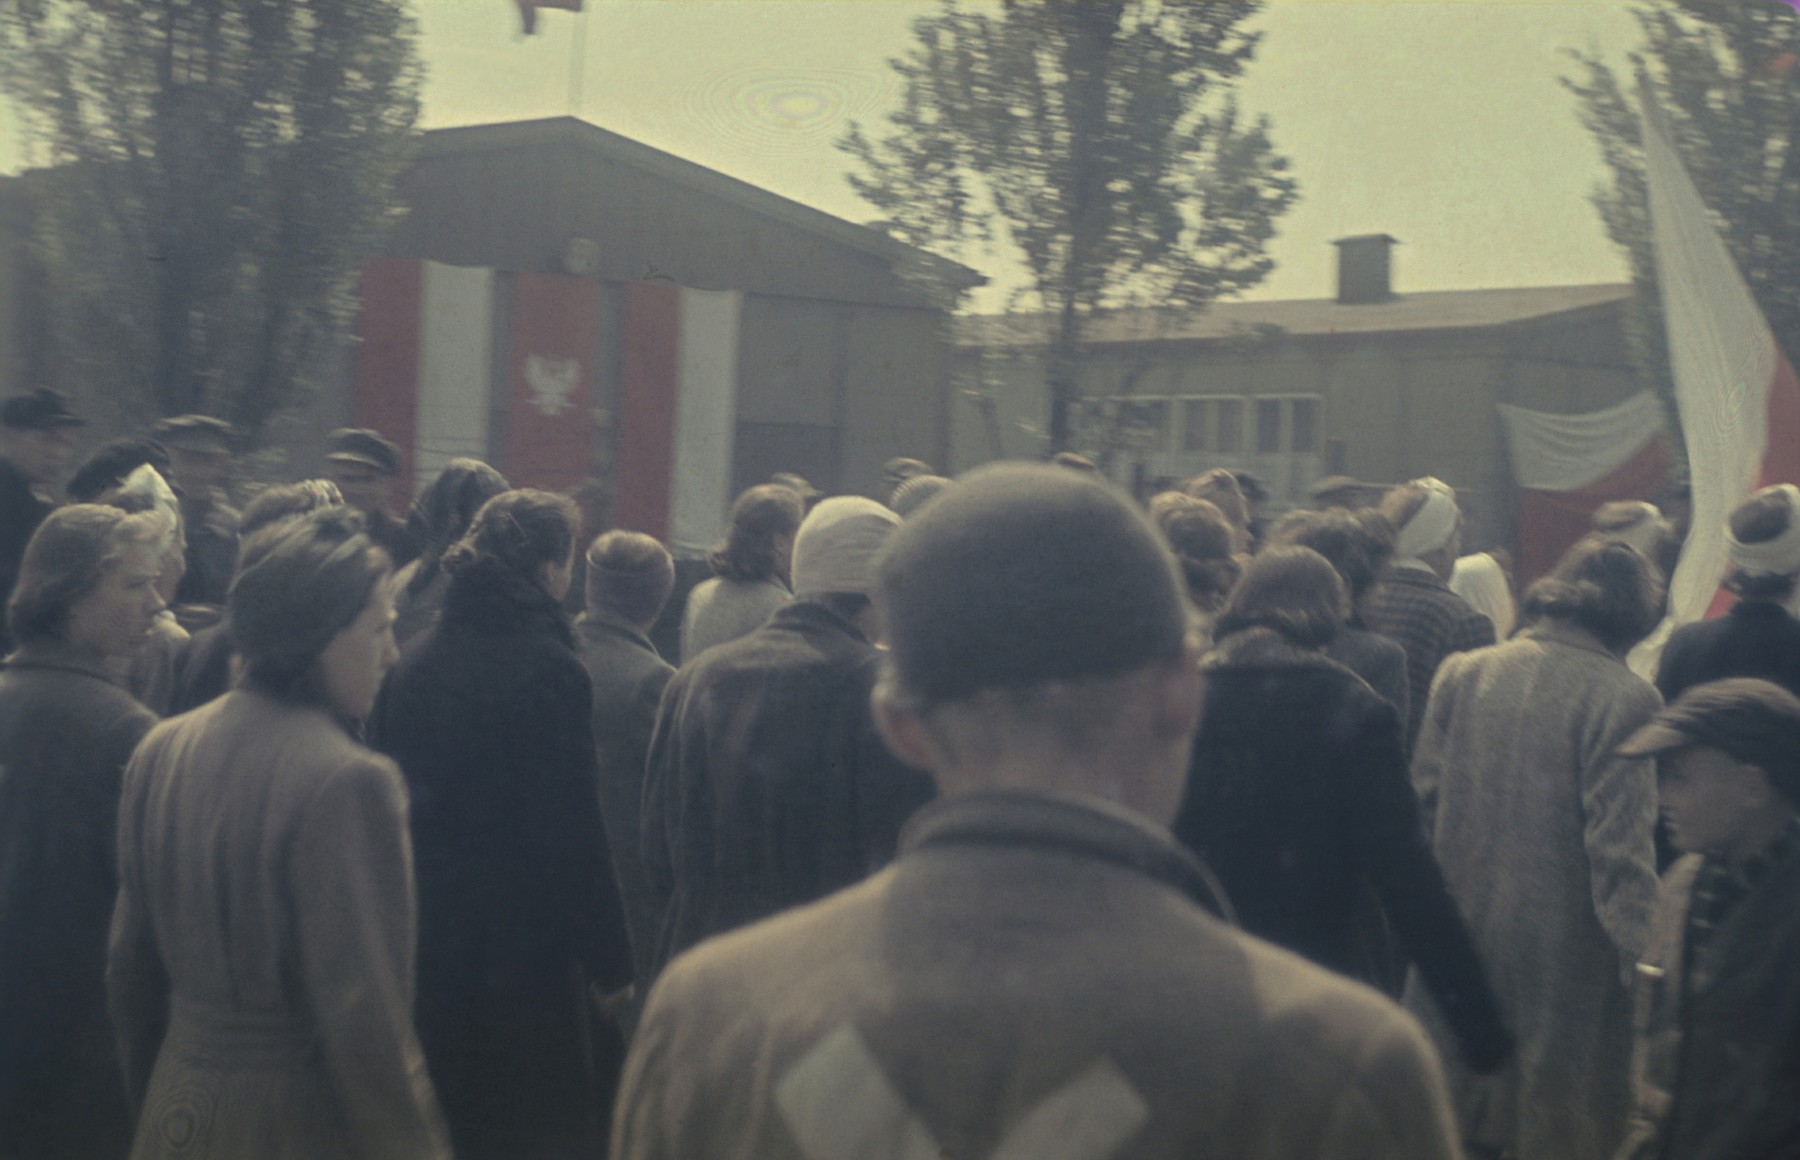 Survivors gather on the main plaza in the newly liberated Dachau concentration camp for a ceremony to salute American liberators and remember those who perished.